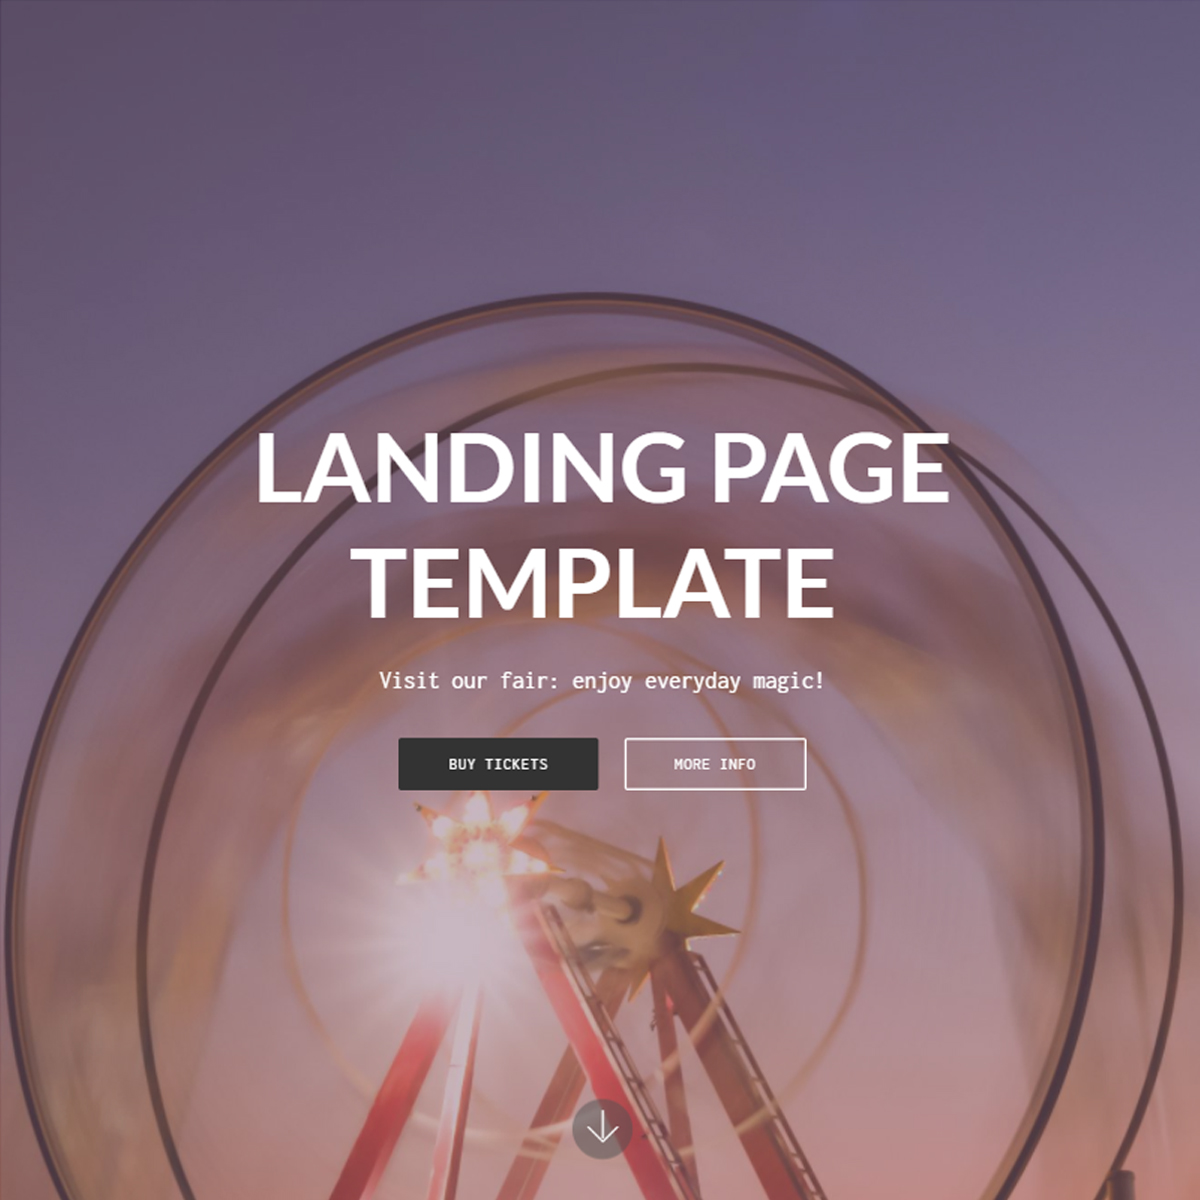 Bootstrap Landing Page Template – Free Download